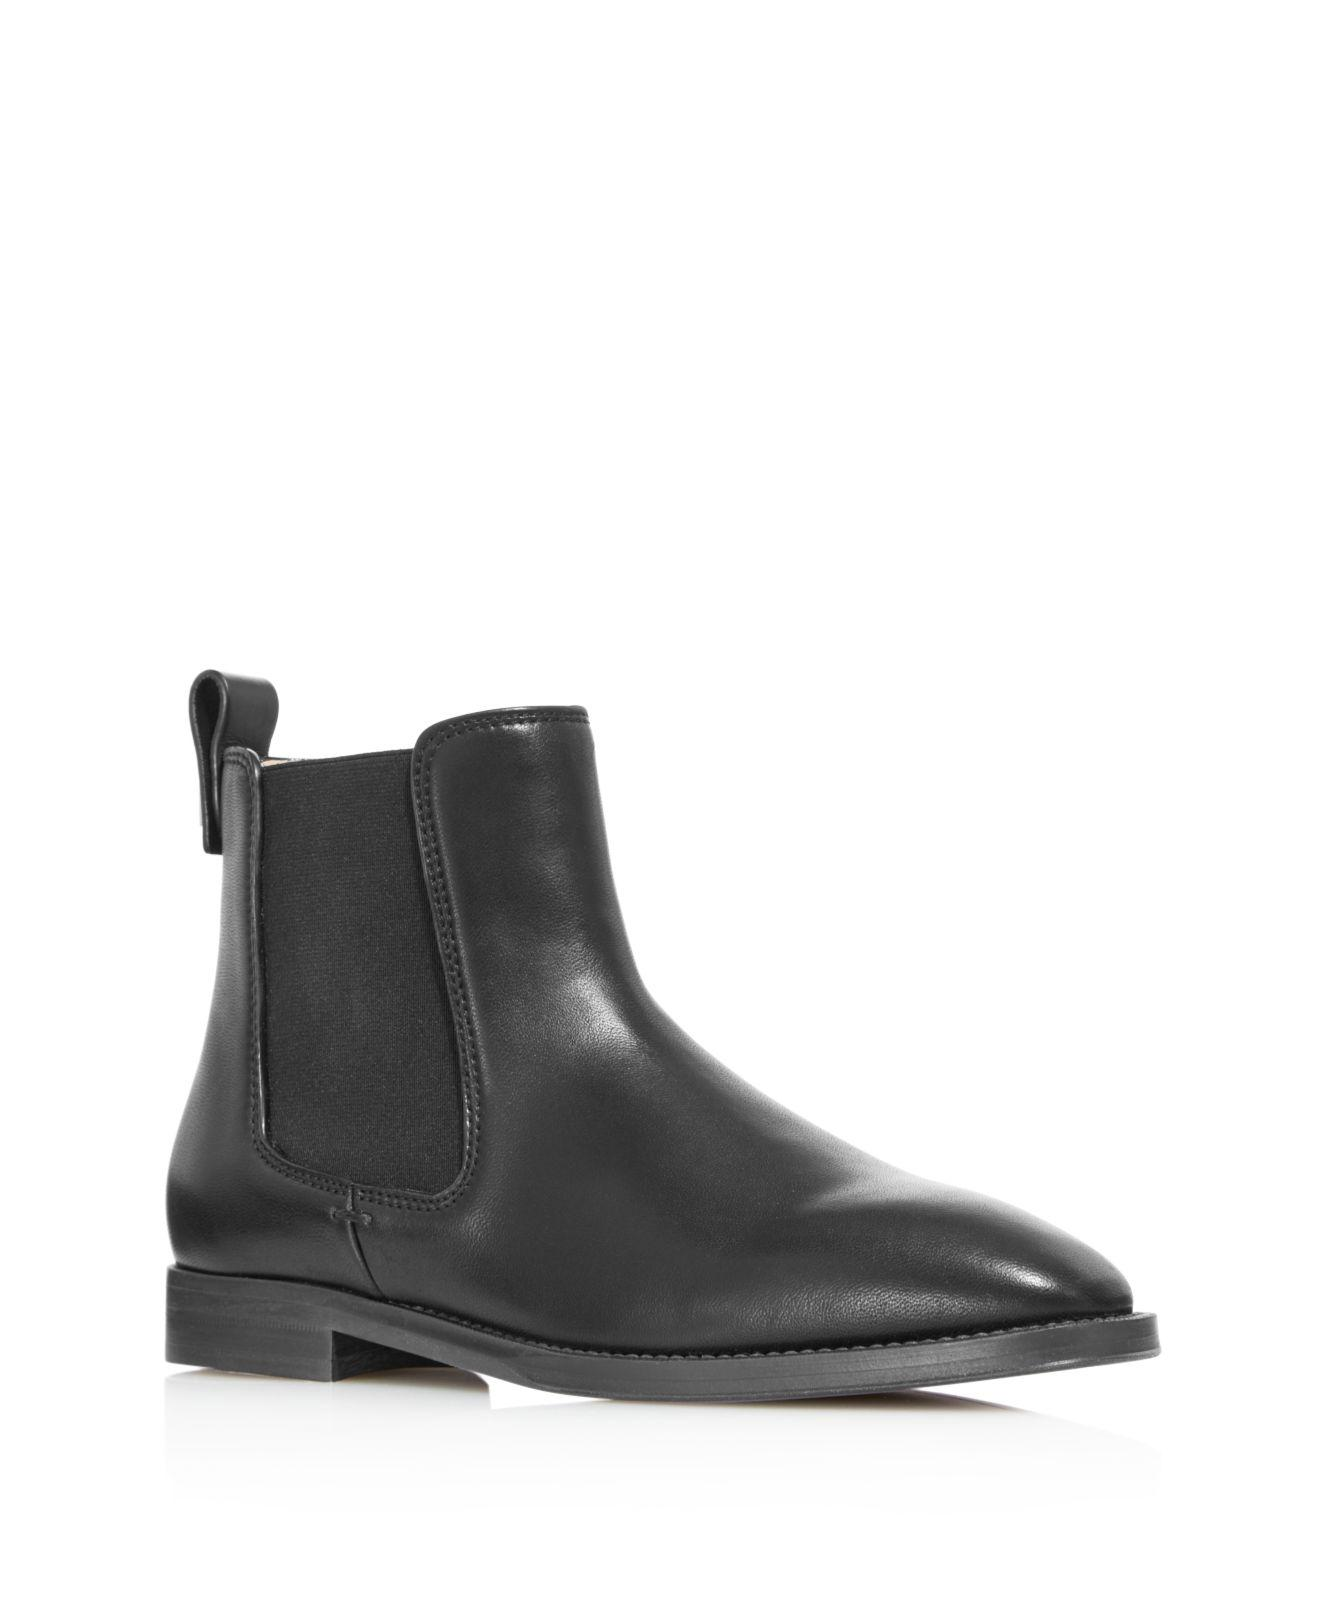 Outlet Finishline Stuart Weitzman Women's Atom Leather Chelsea Booties Recommend Cheap Price Cheap Clearance Clearance Great Deals Genuine For Sale raZlElKG